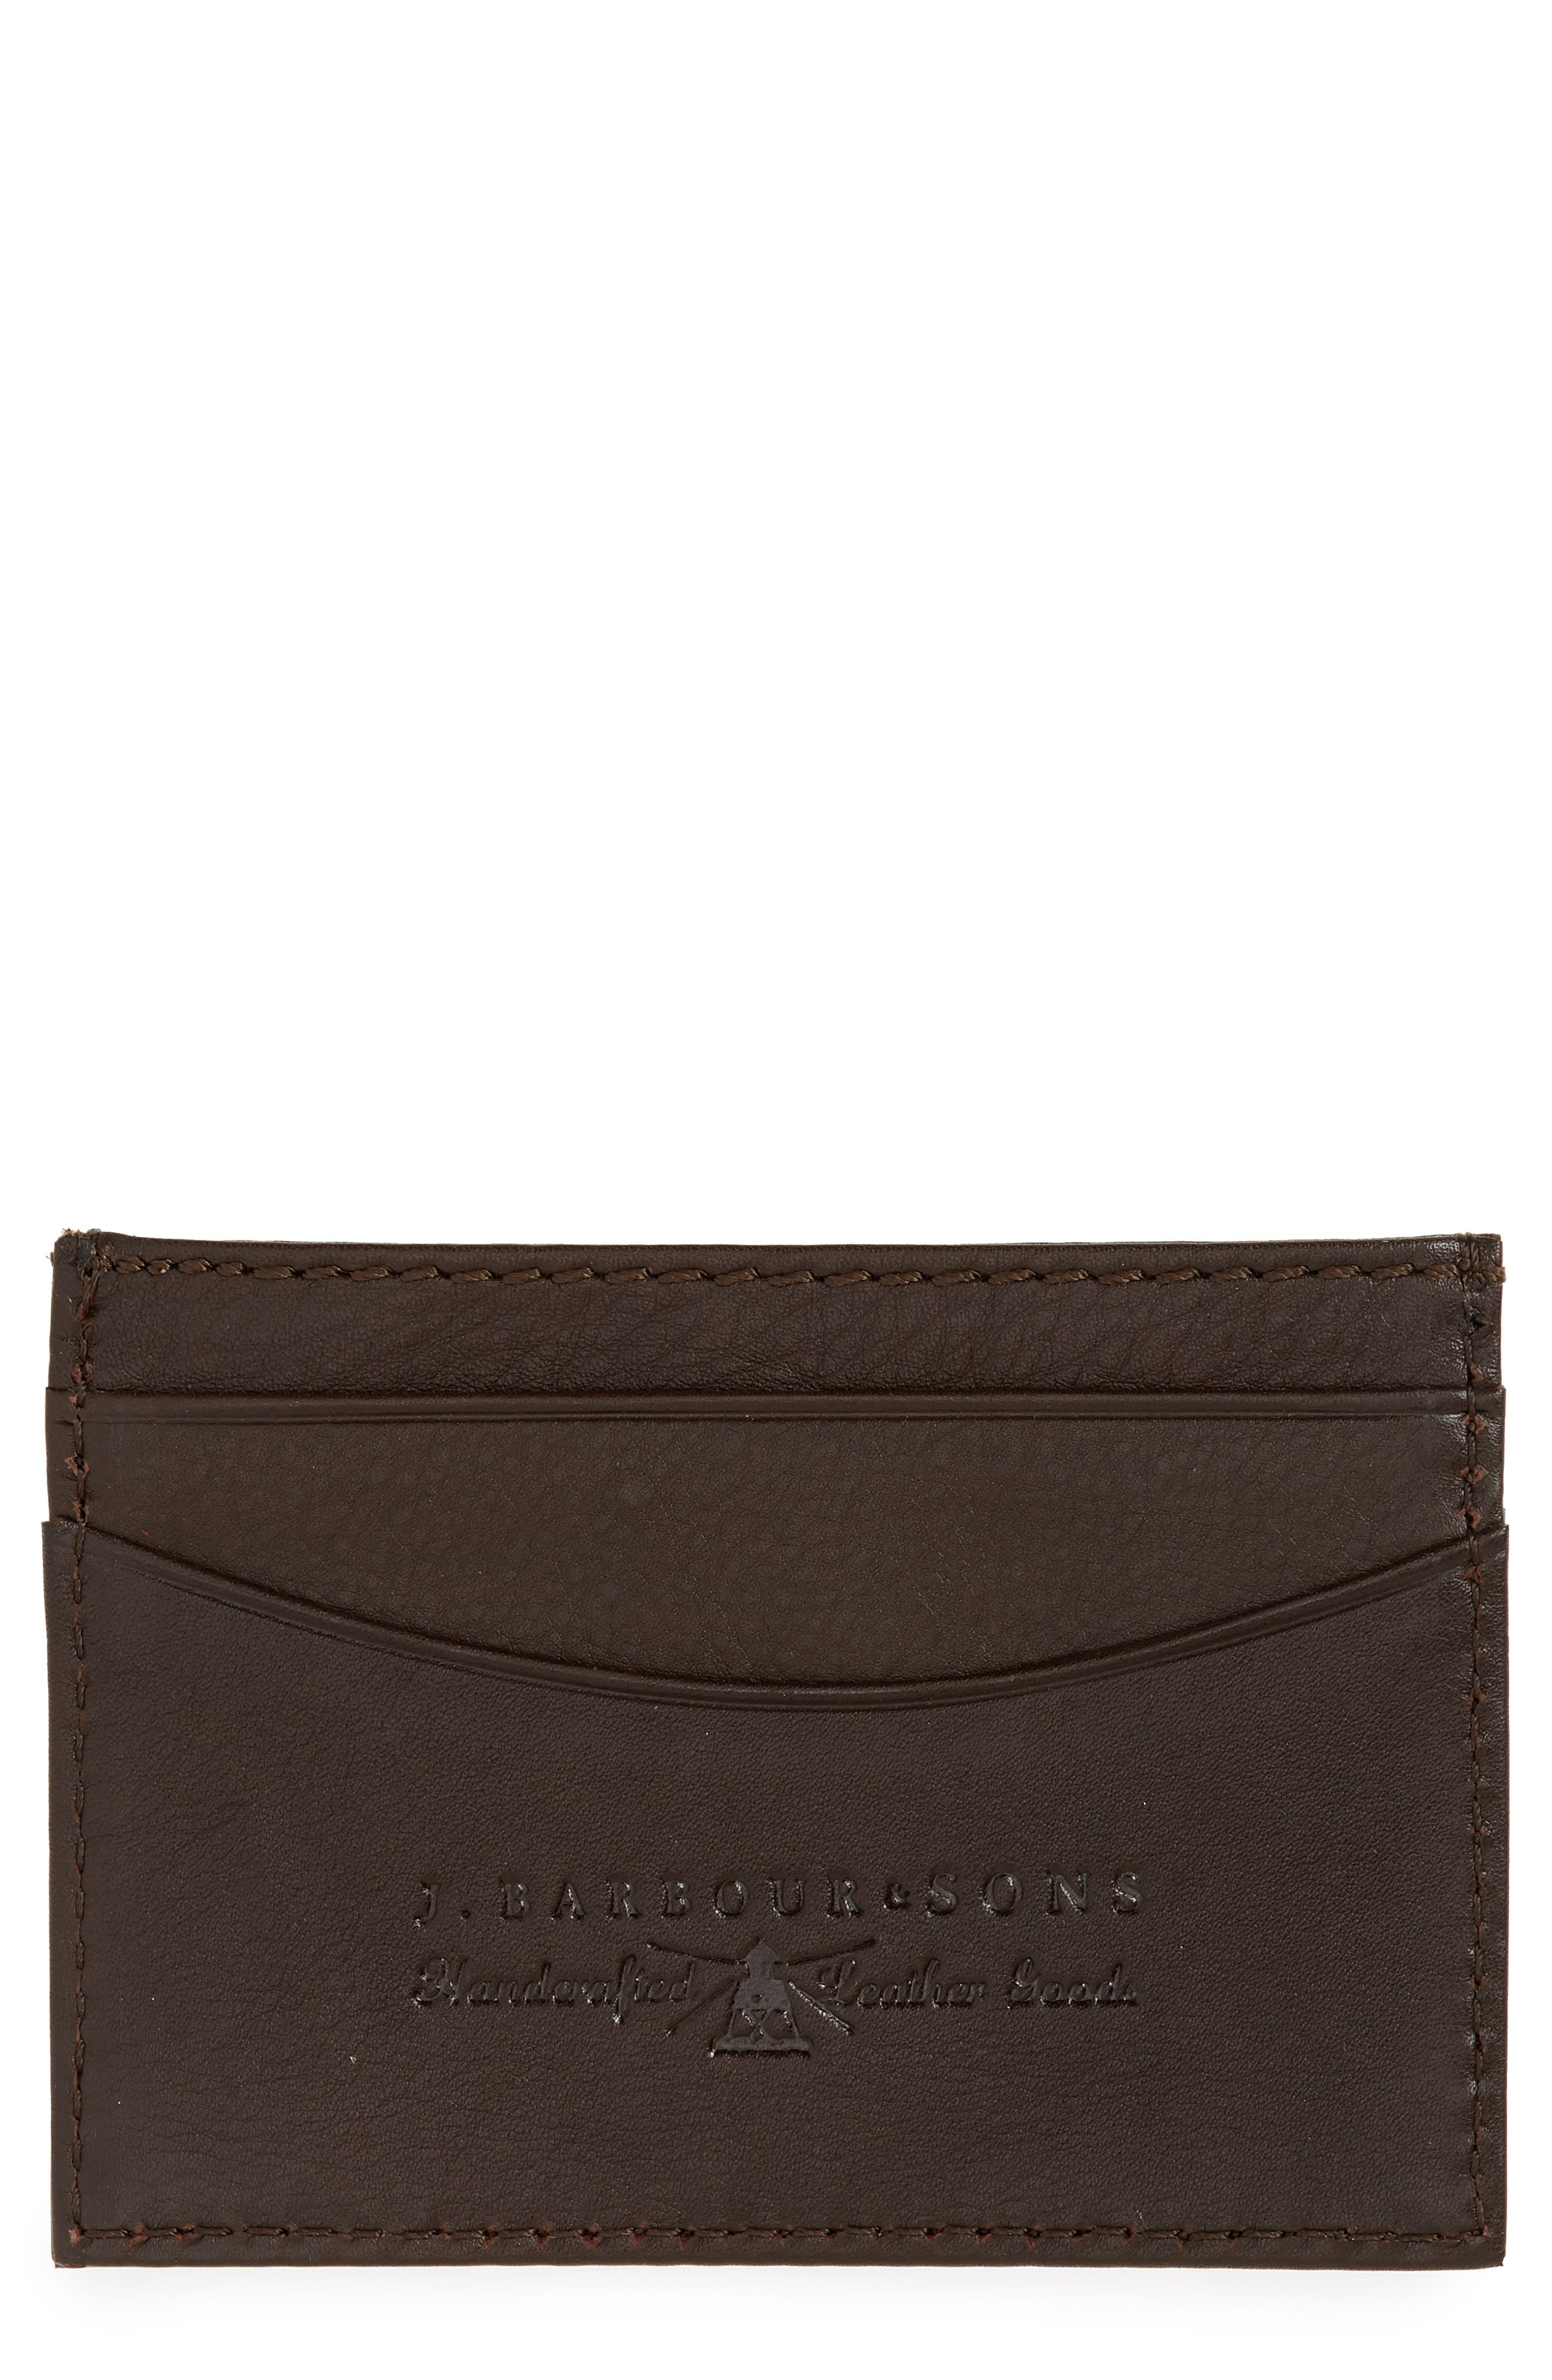 Leather Card Case,                             Main thumbnail 1, color,                             200